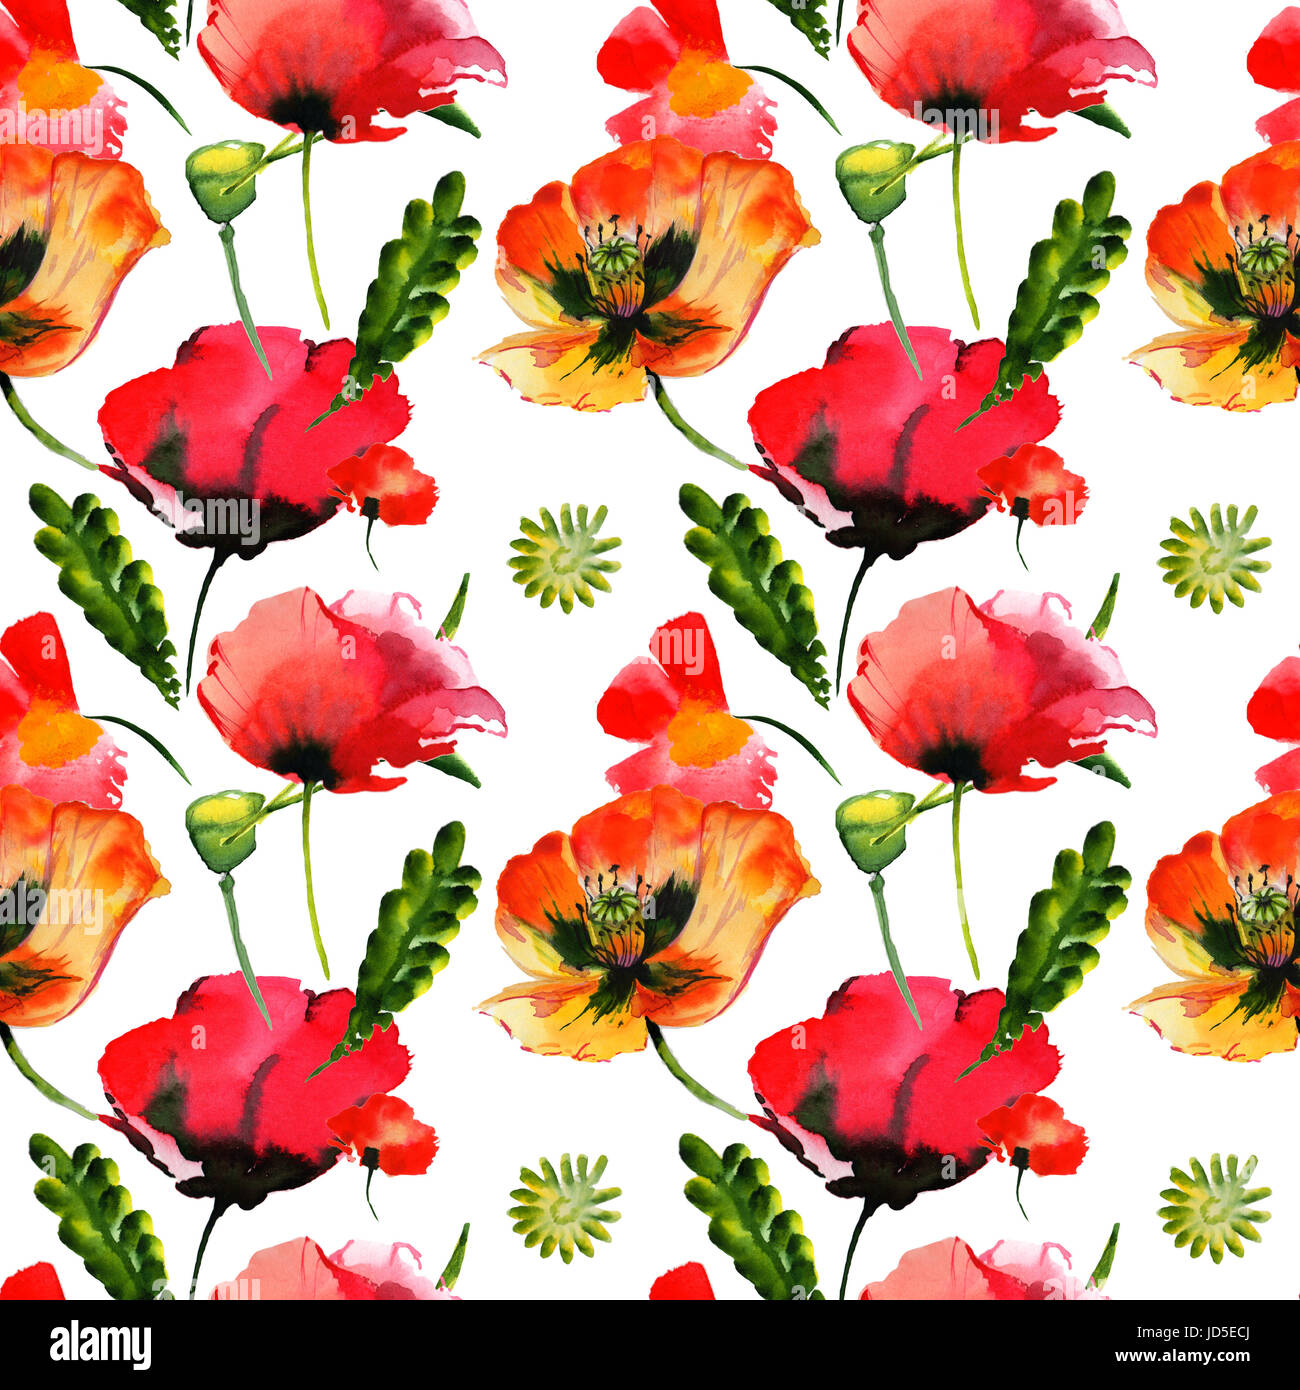 Wildflower Poppy Flower Pattern In A Watercolor Style Isolated Full